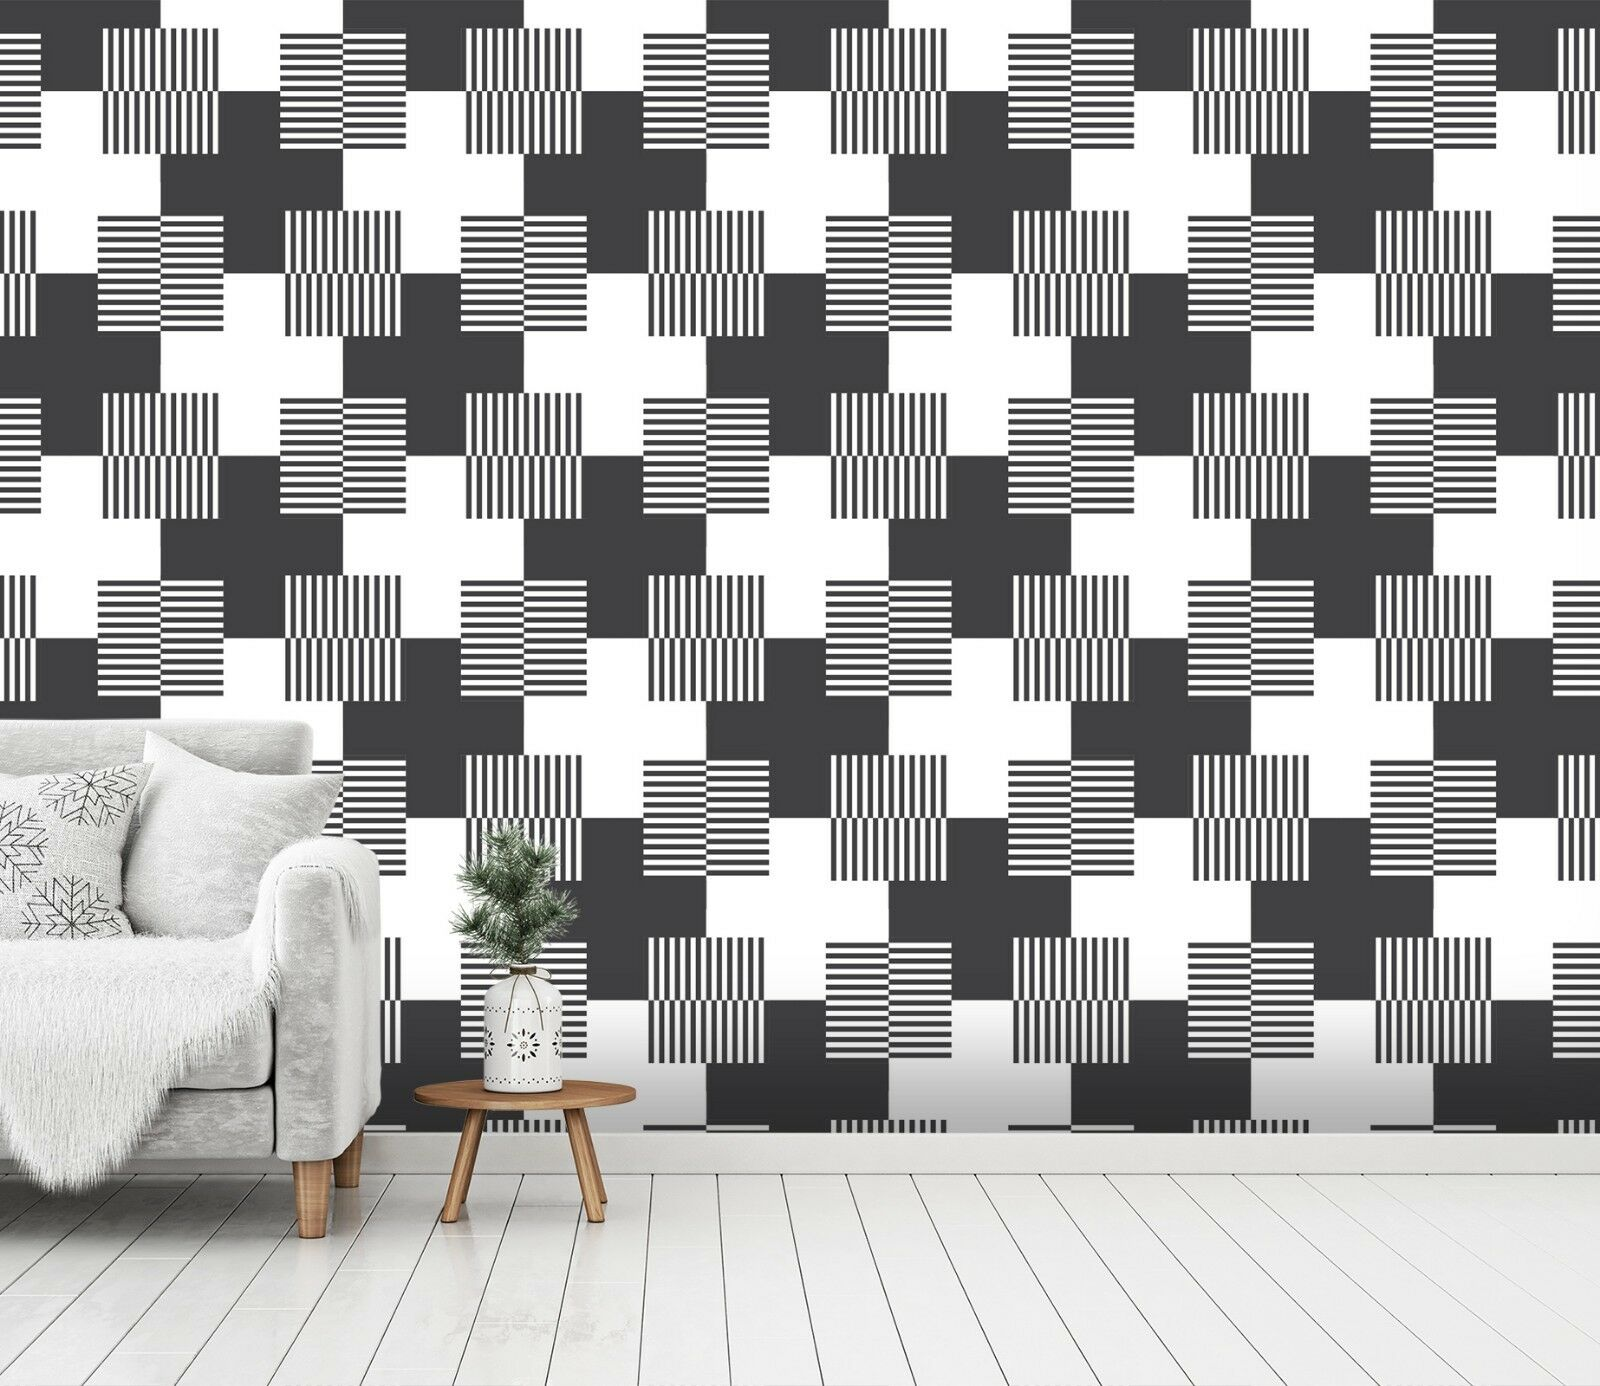 3D Modern Tile 312 Wallpaper Mural Print Wall Indoor Wallpaper Murals UK Summer